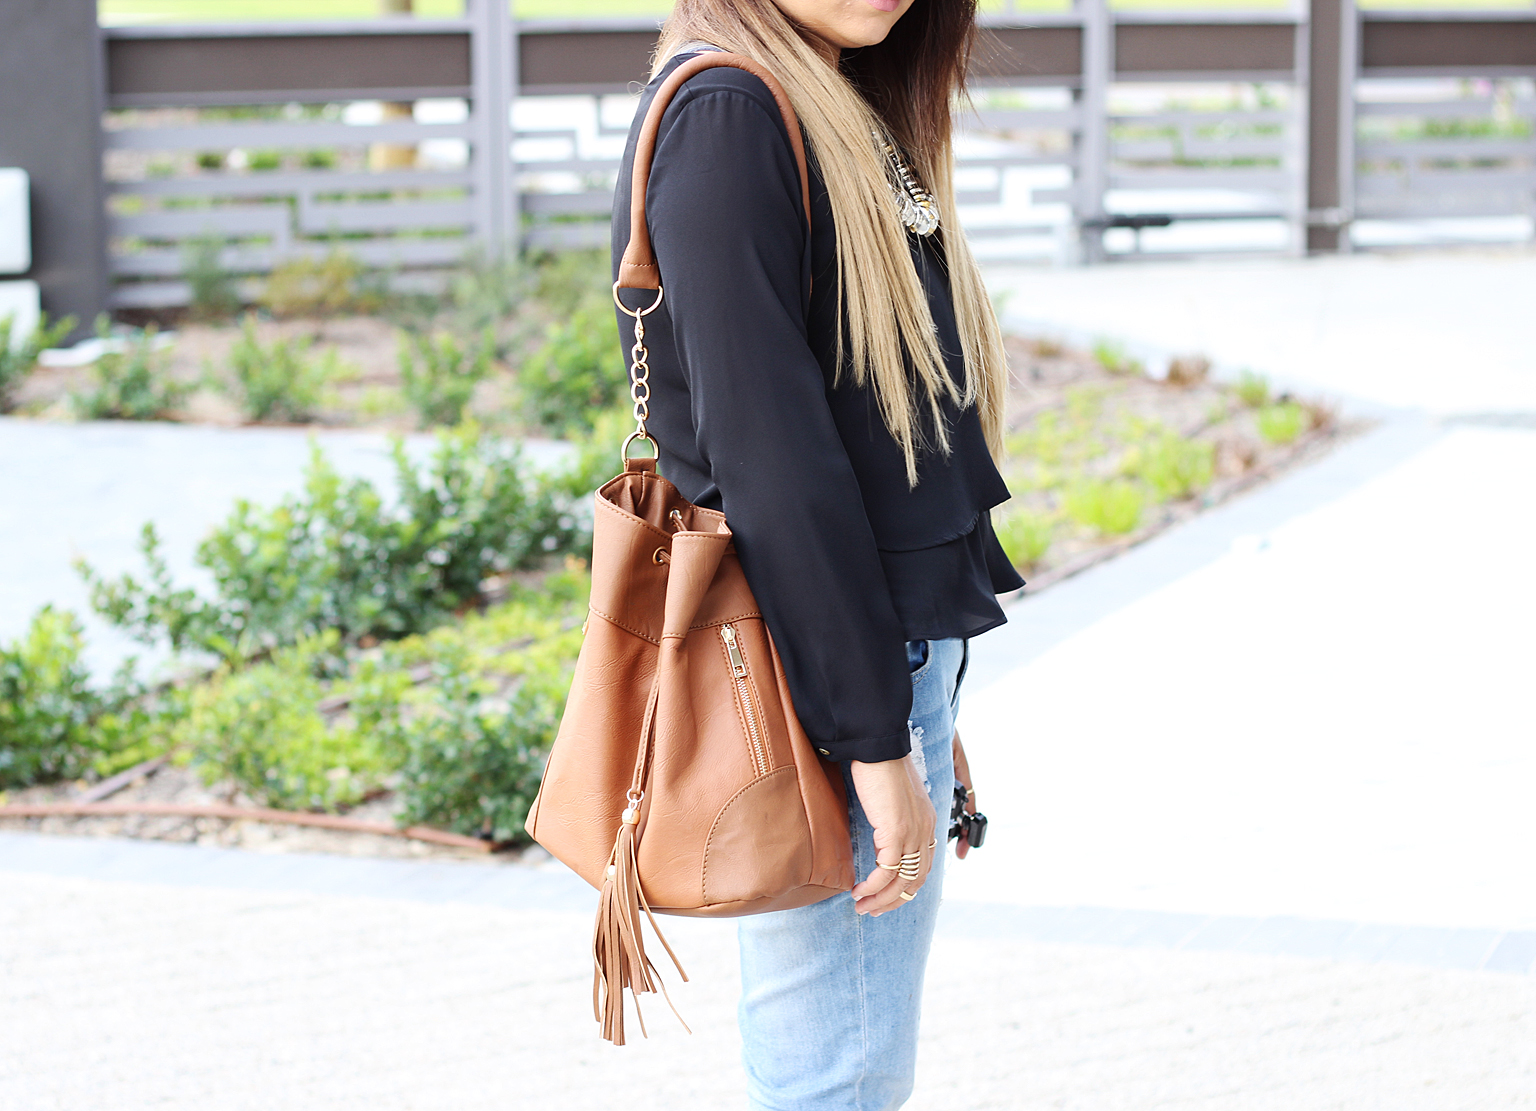 zara blouse, cotton on skinny jeans, lace up heels, steve madden lace up heels, bucket bag, ombre hair, fashion blogger cape town